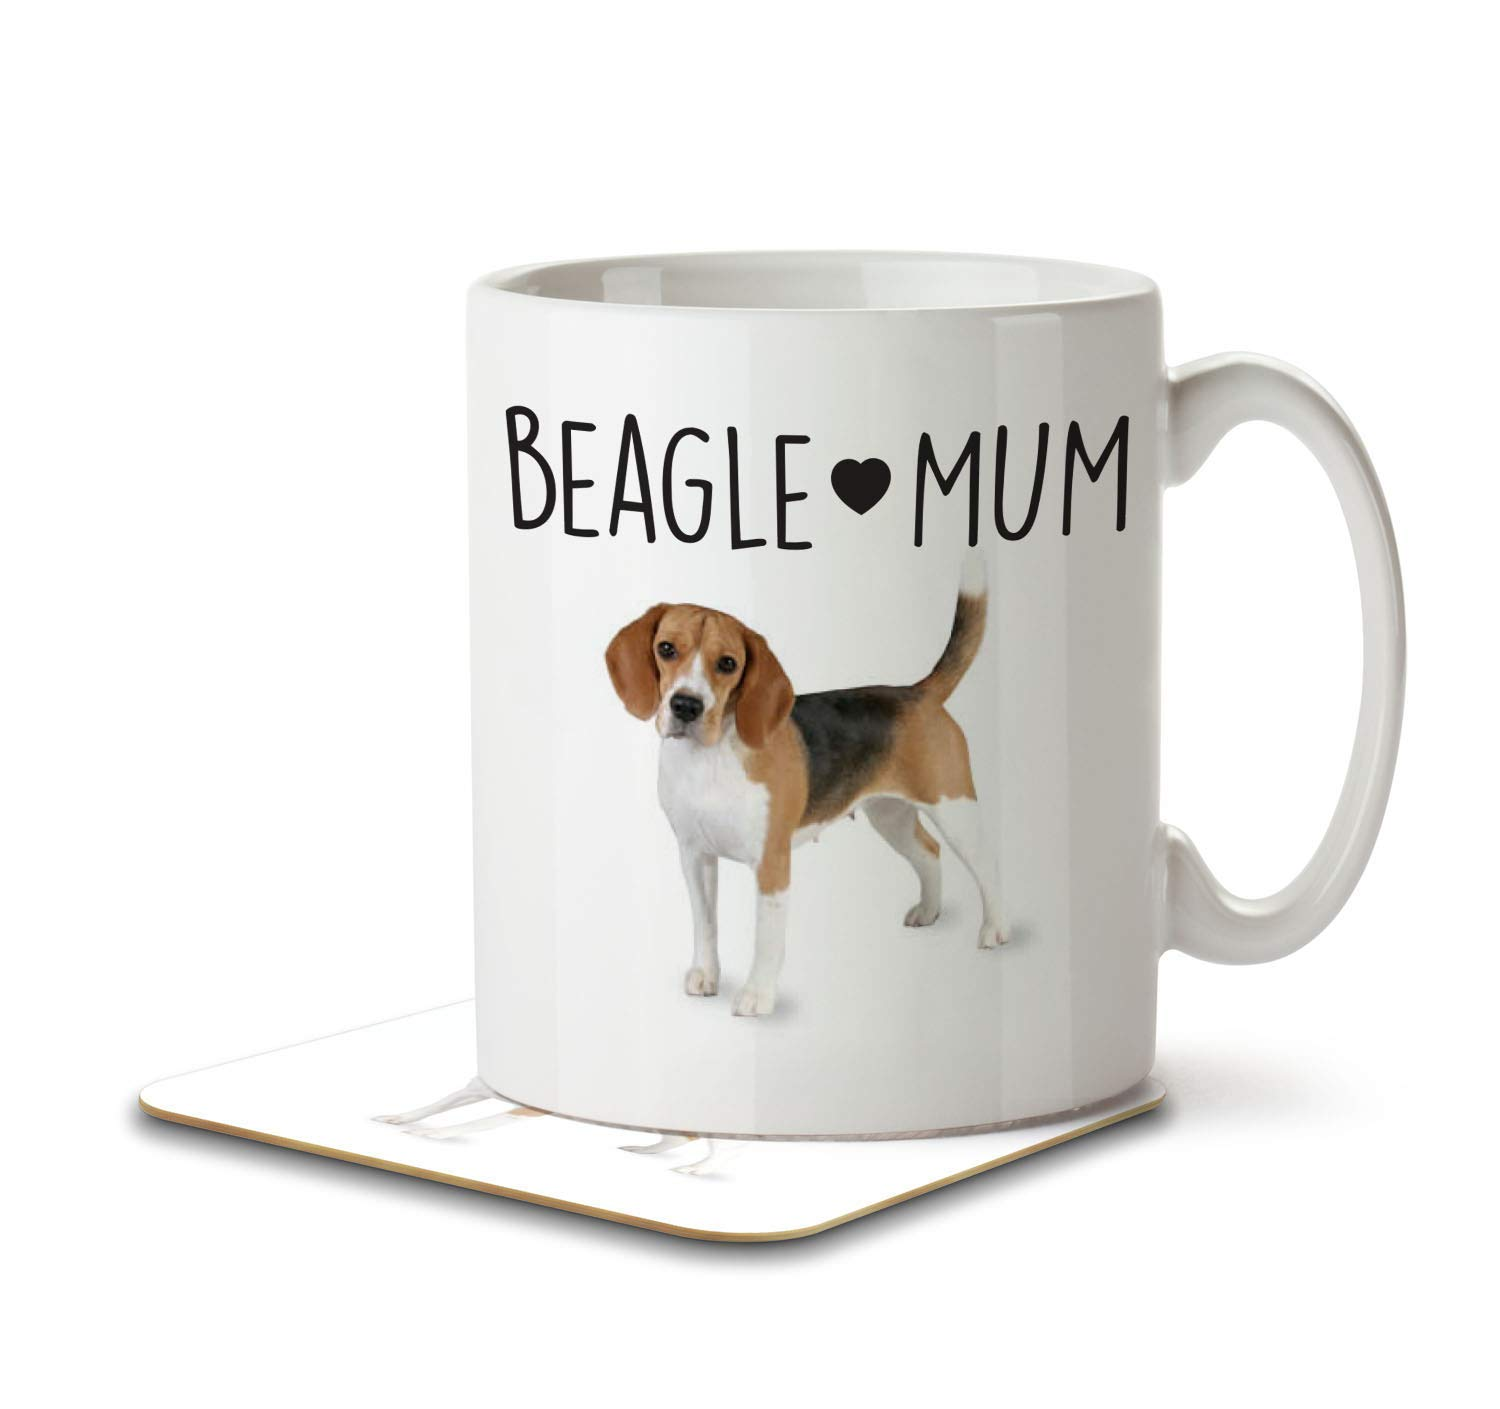 Beagle Mum – Mug and Coaster by Inky Penguin